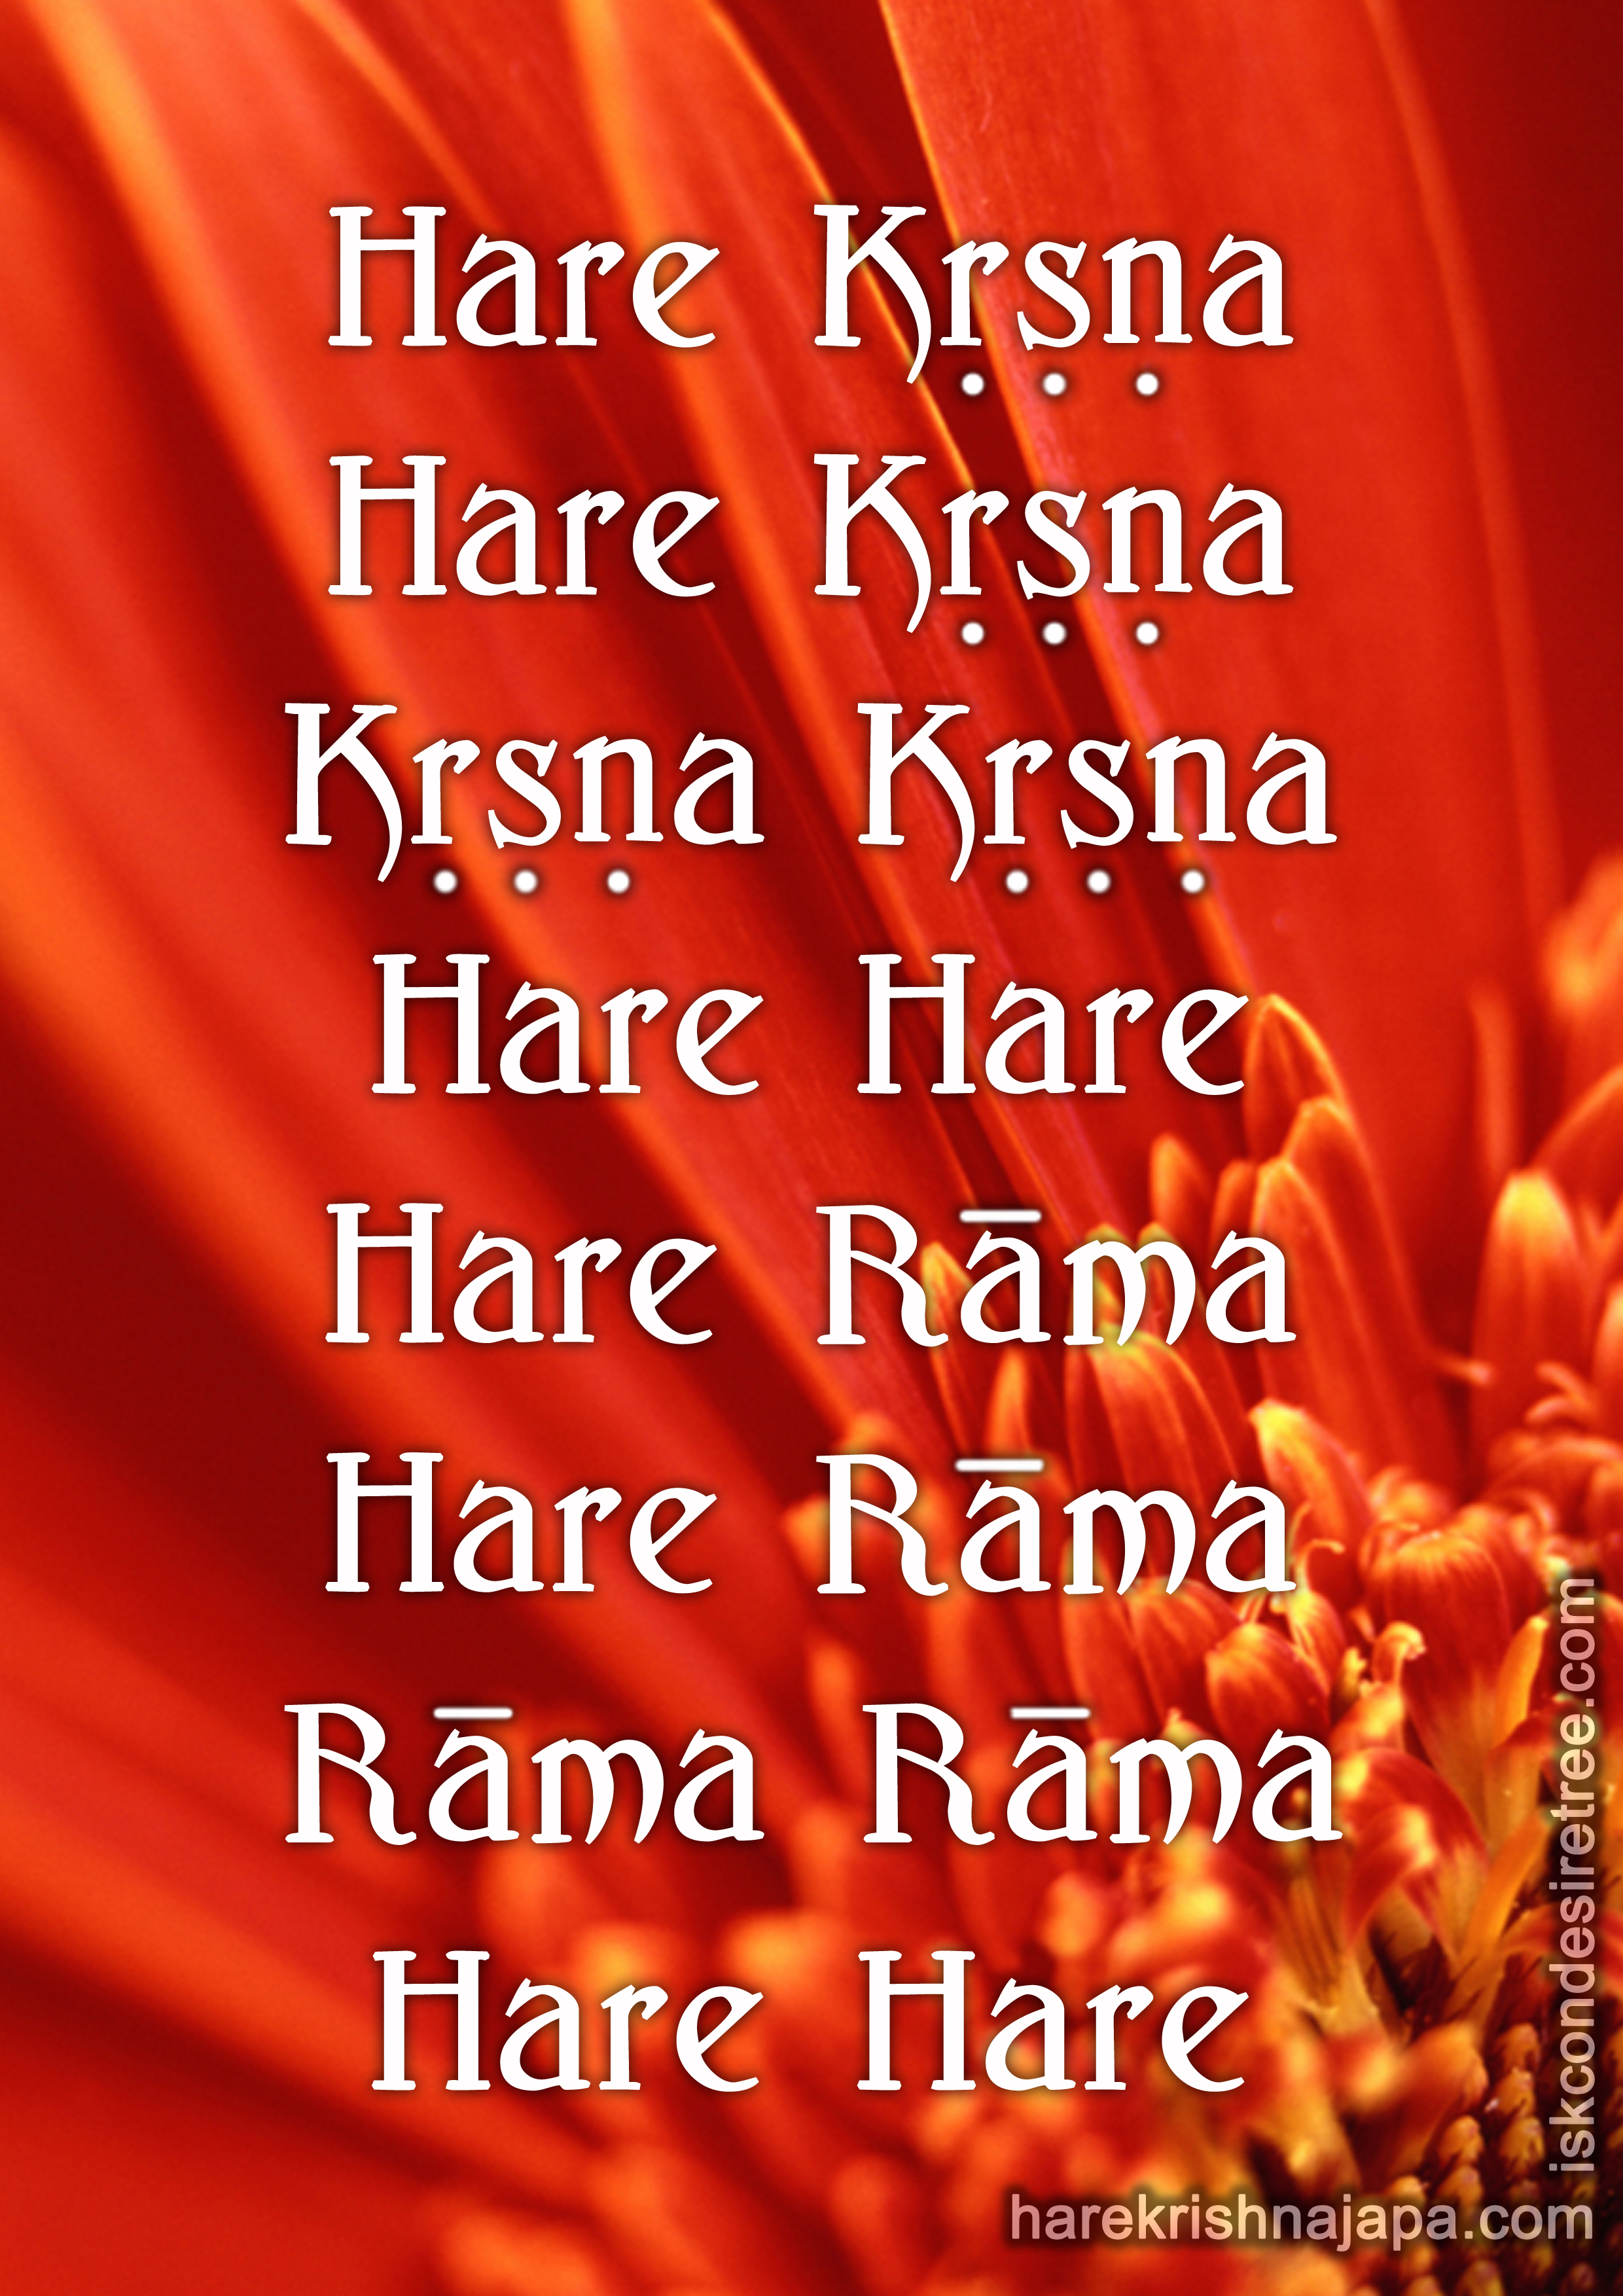 Hare Krishna Pictures Posters News And Videos On Your